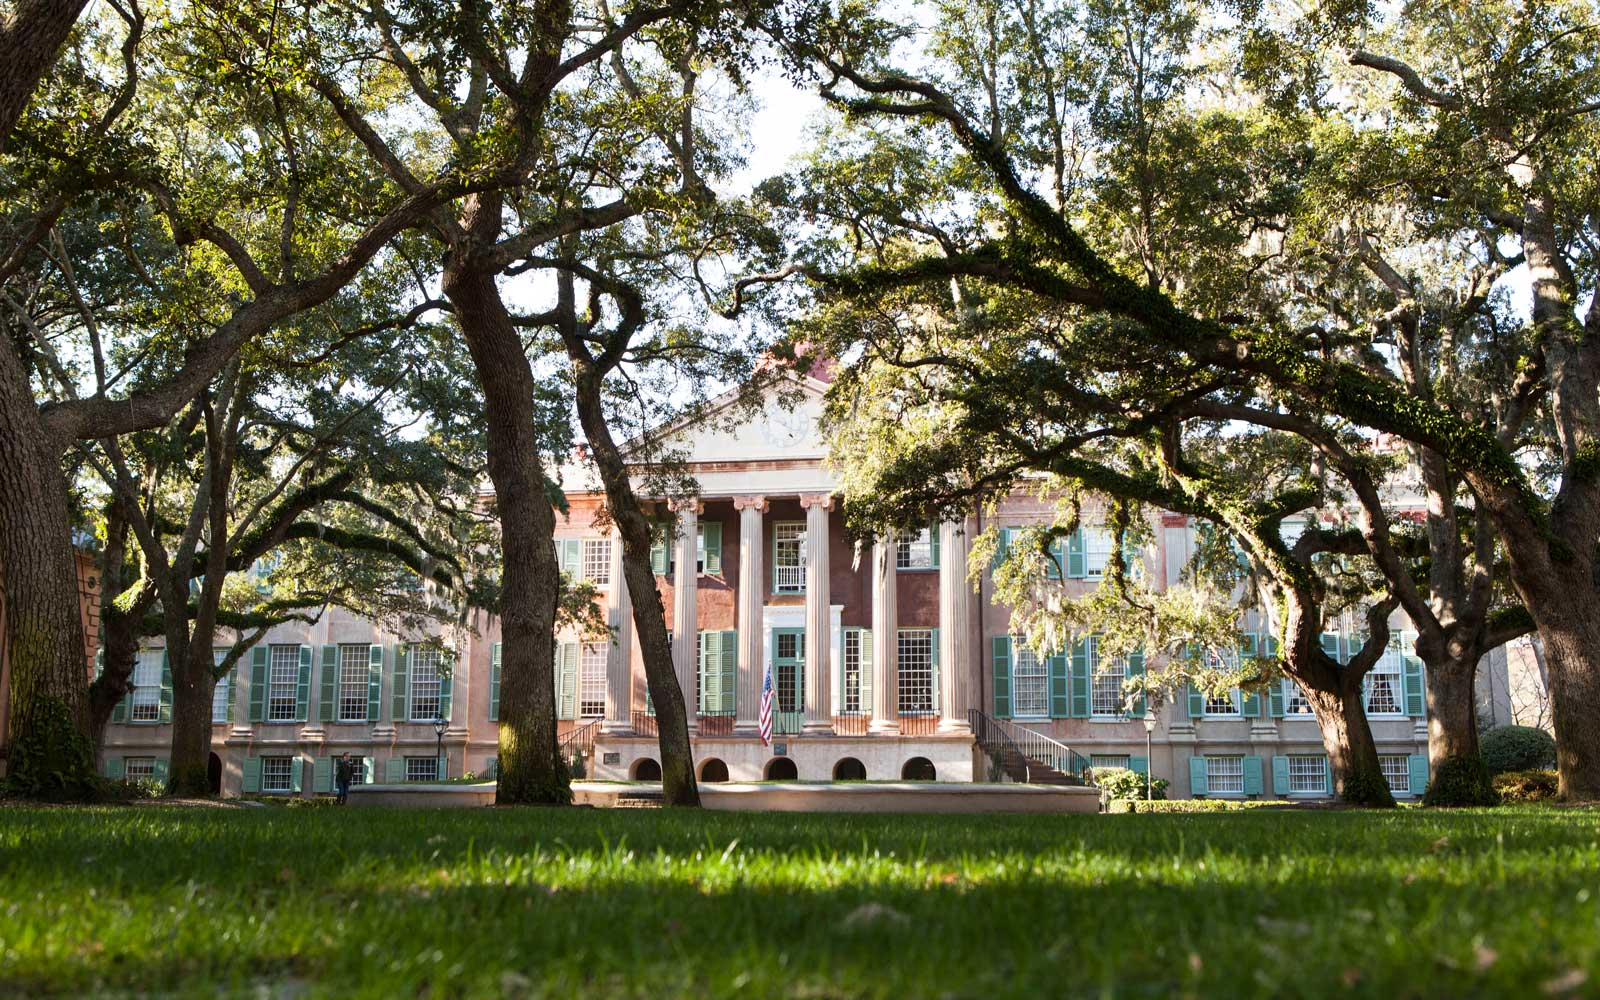 College of Charleston, America's Most Beautiful College Campus, in Photos